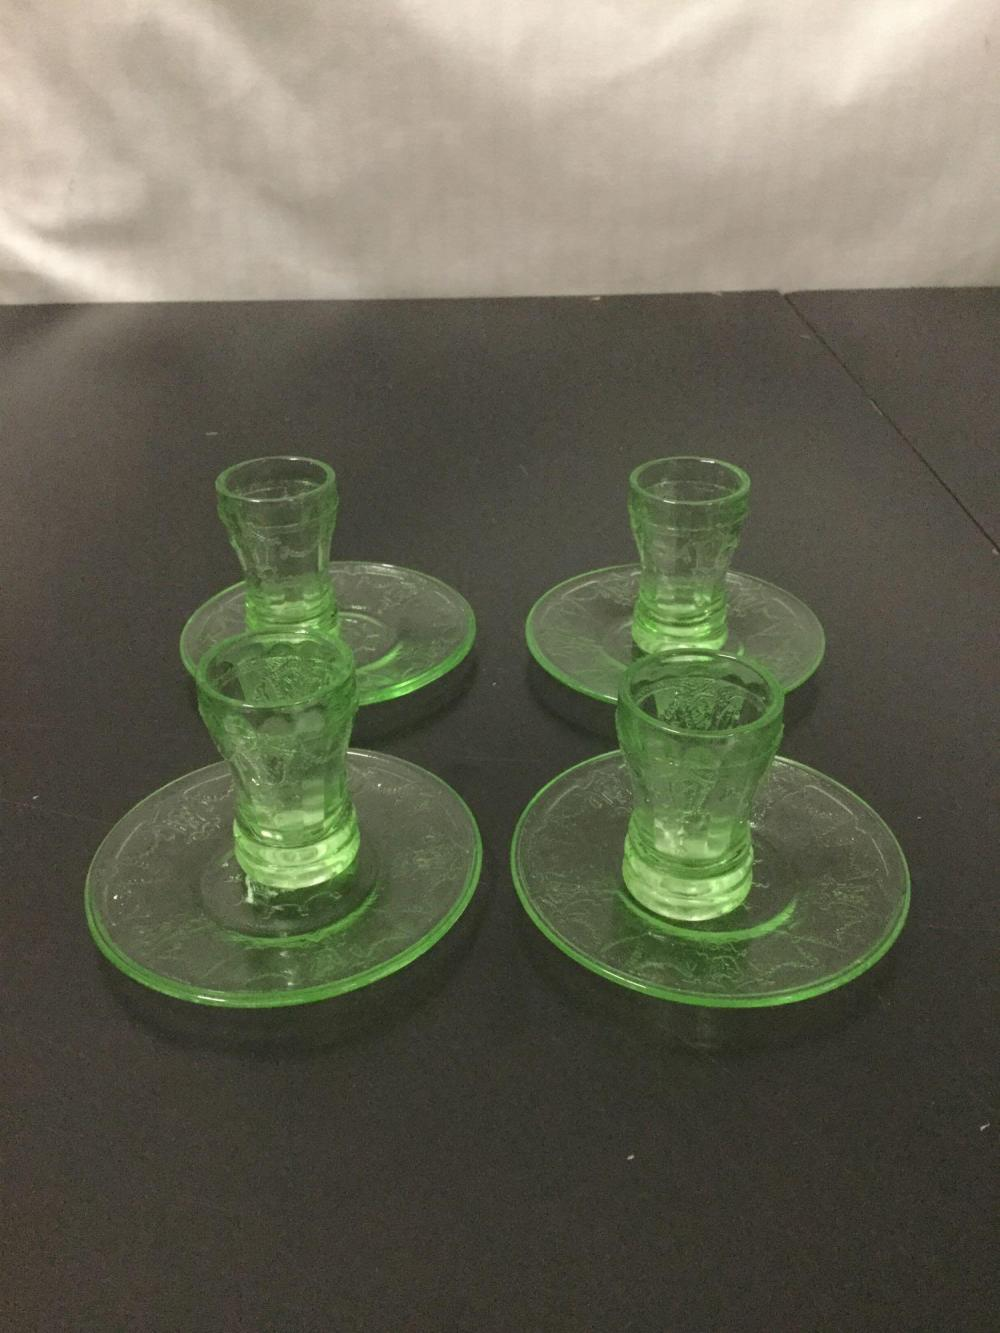 Lot 18: 12 pc of vintage green depression glass - etched plate, pattern plate, childs pitcher etc